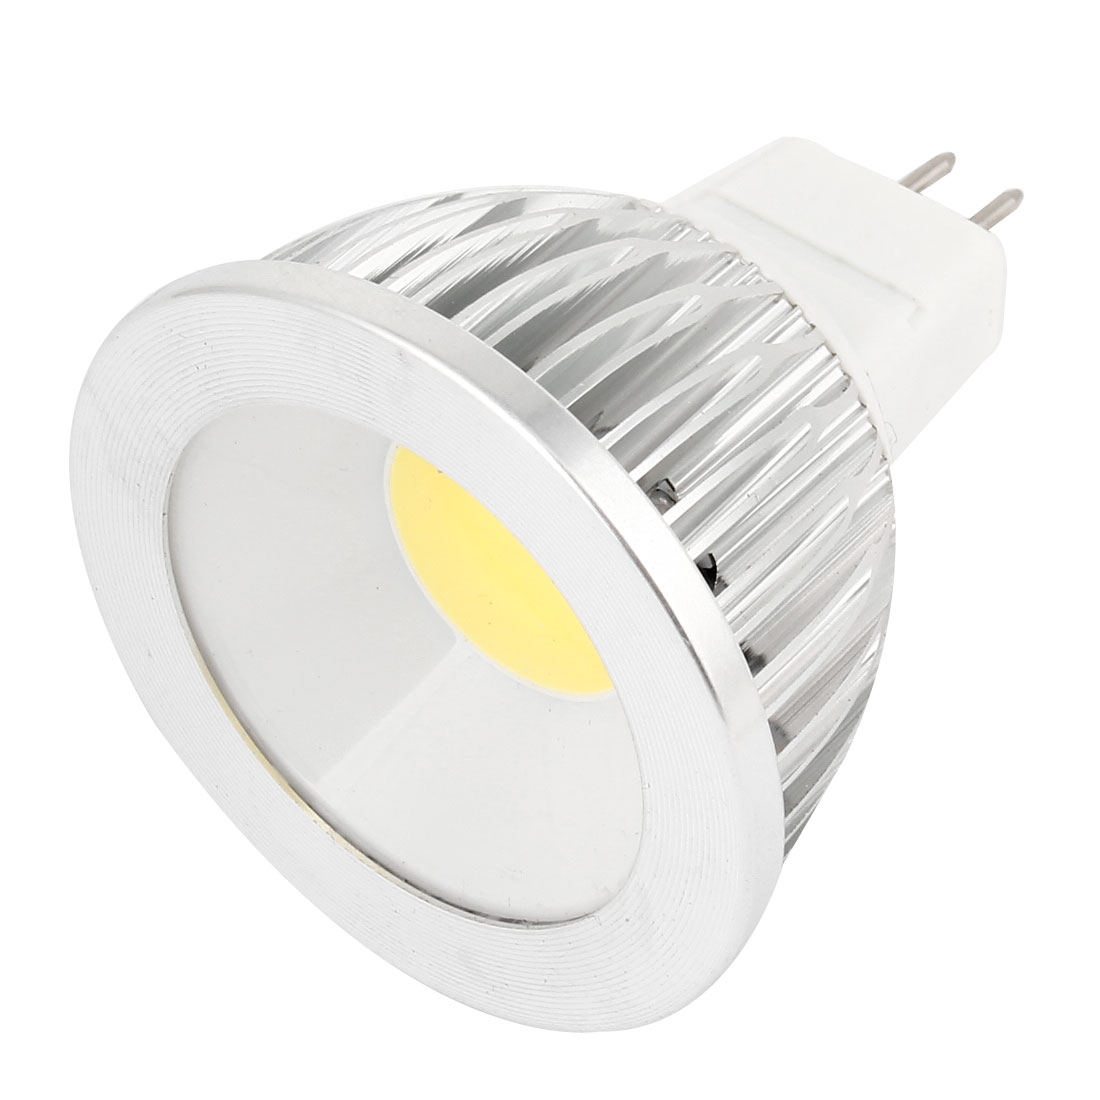 AC 12V 6W MR16 Dimmable White Light COB LED Downlight Spotlight Bulb